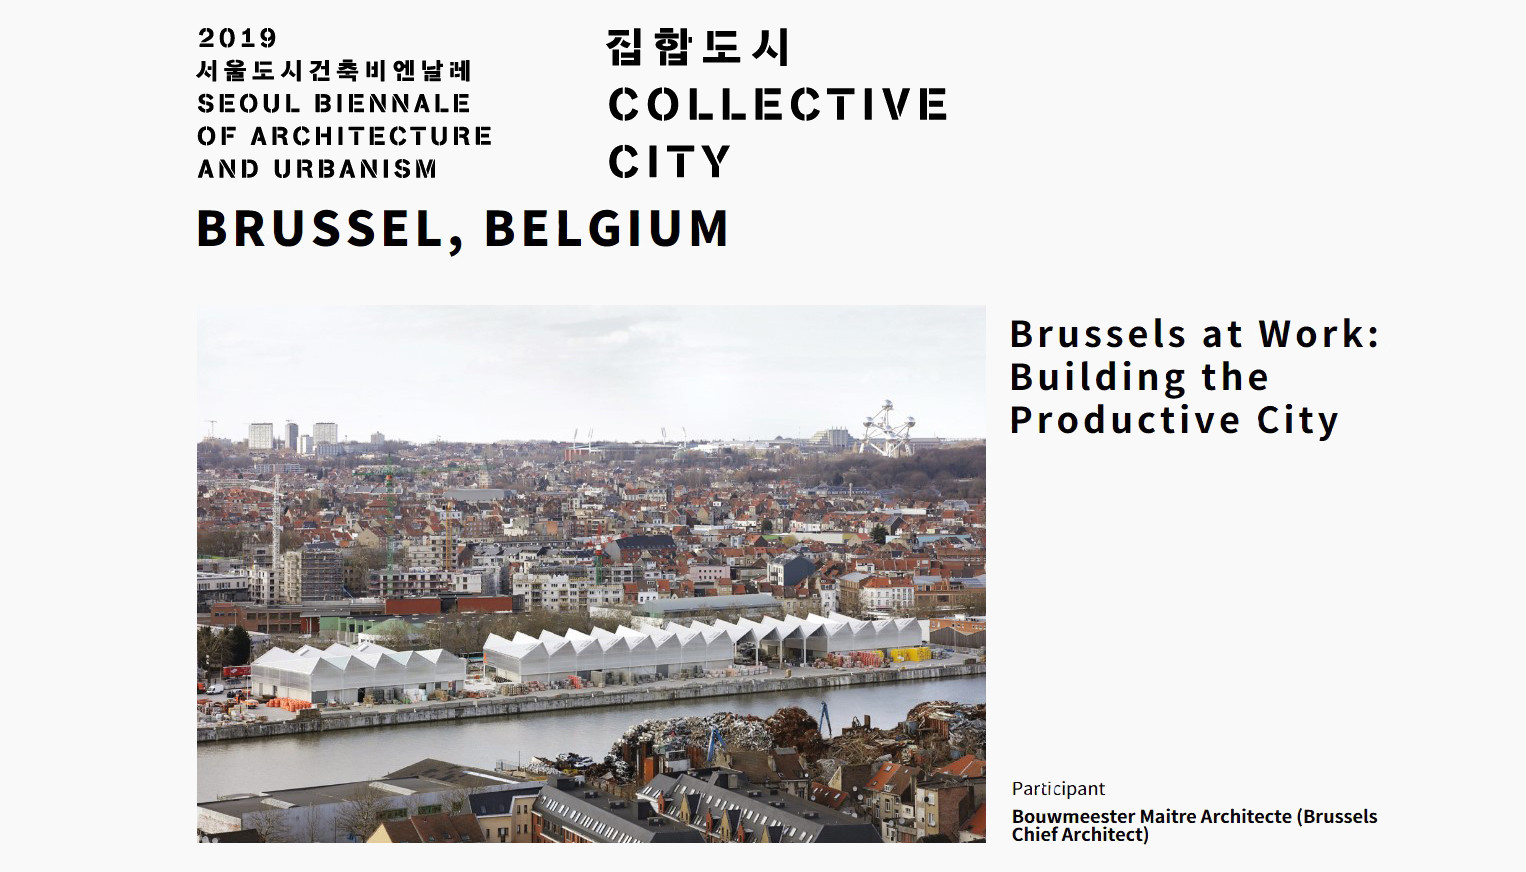 Seoul Biennale of Architecture and Urbanism. Productive city.